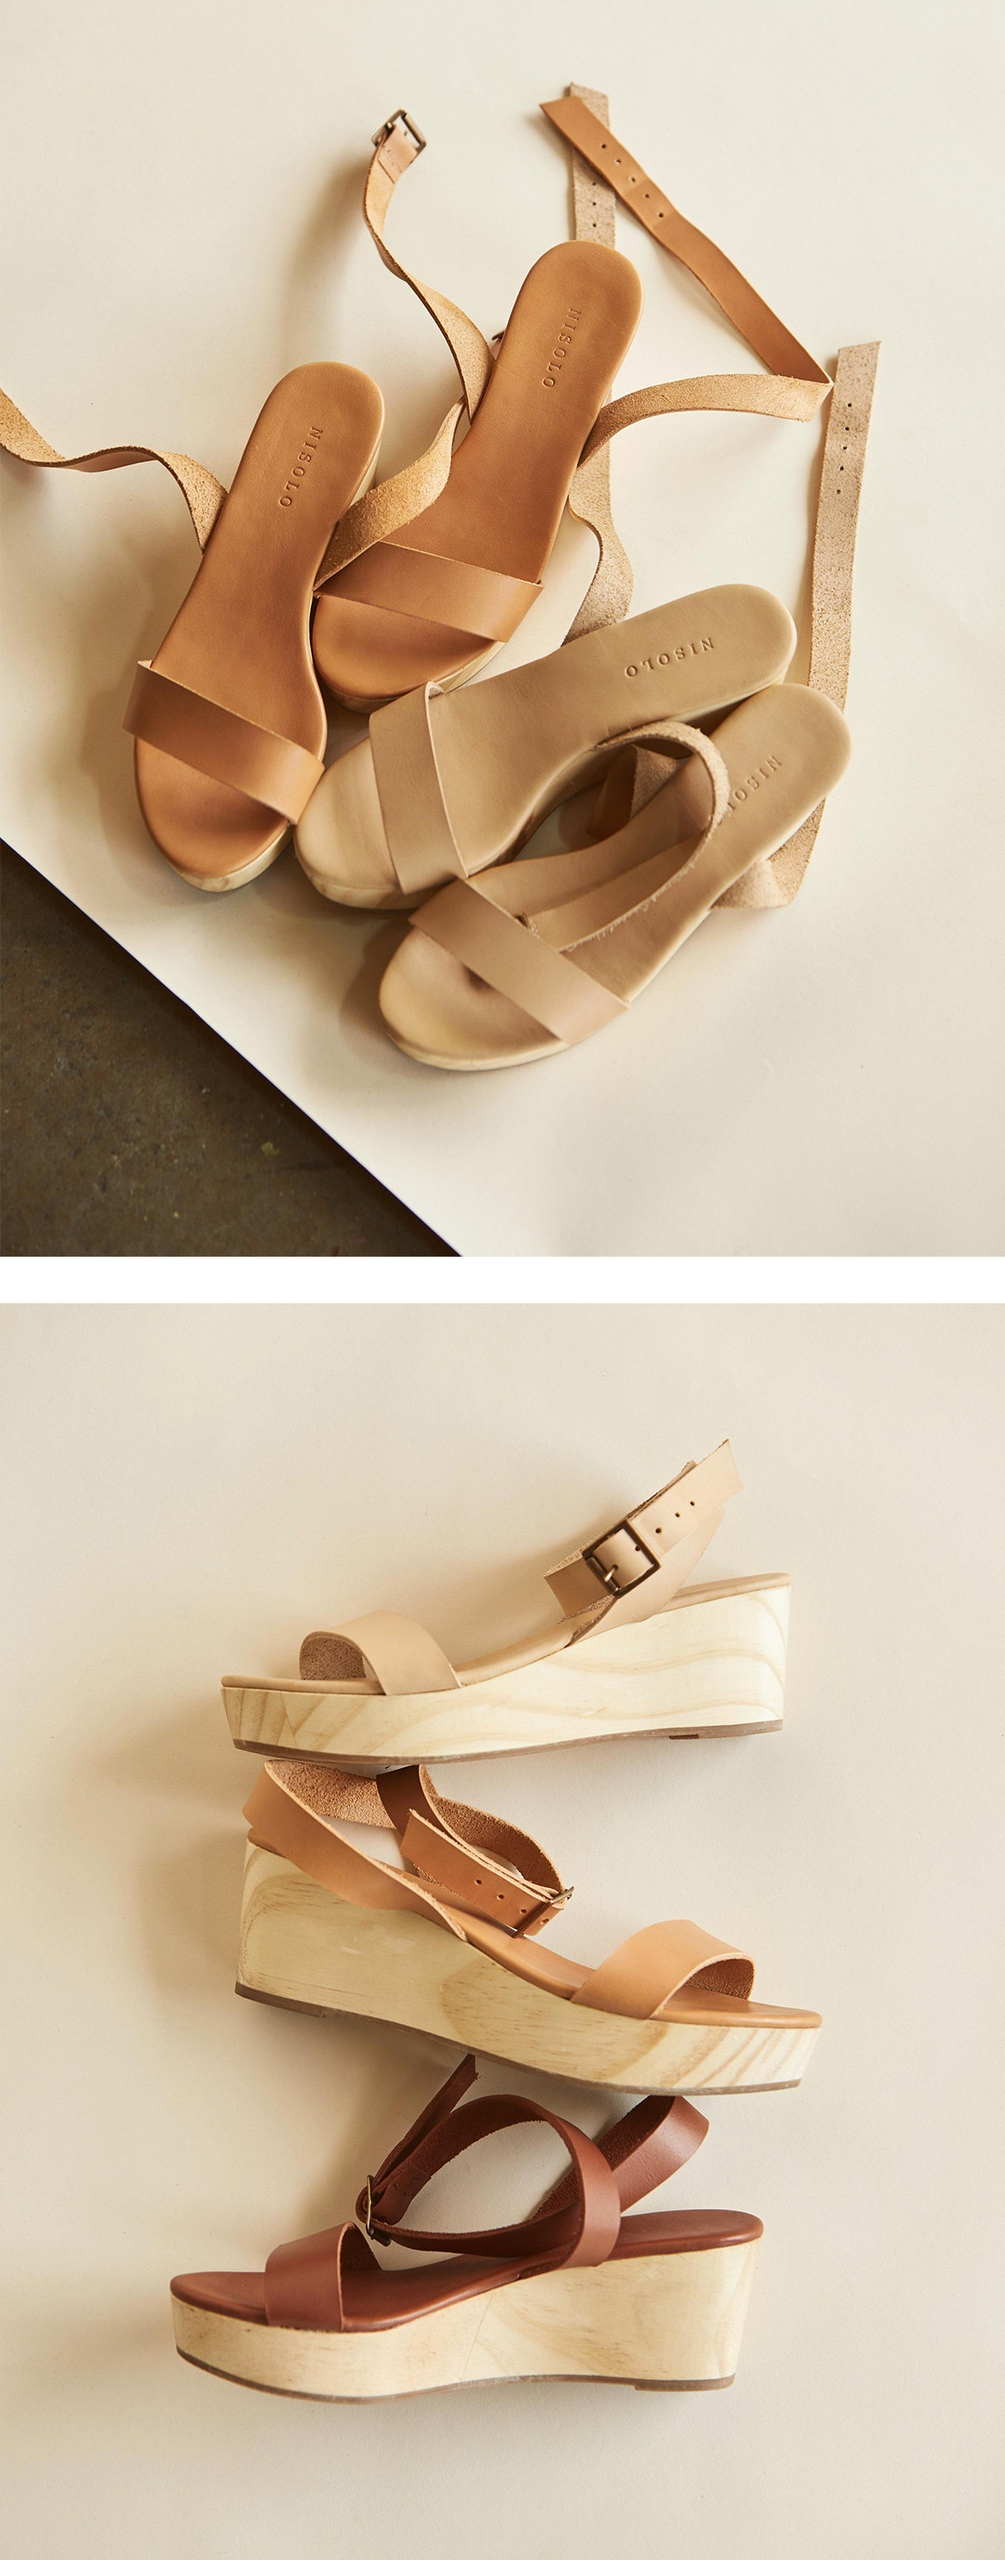 wood wedge $25 purchase $100 - lawnparty | ello